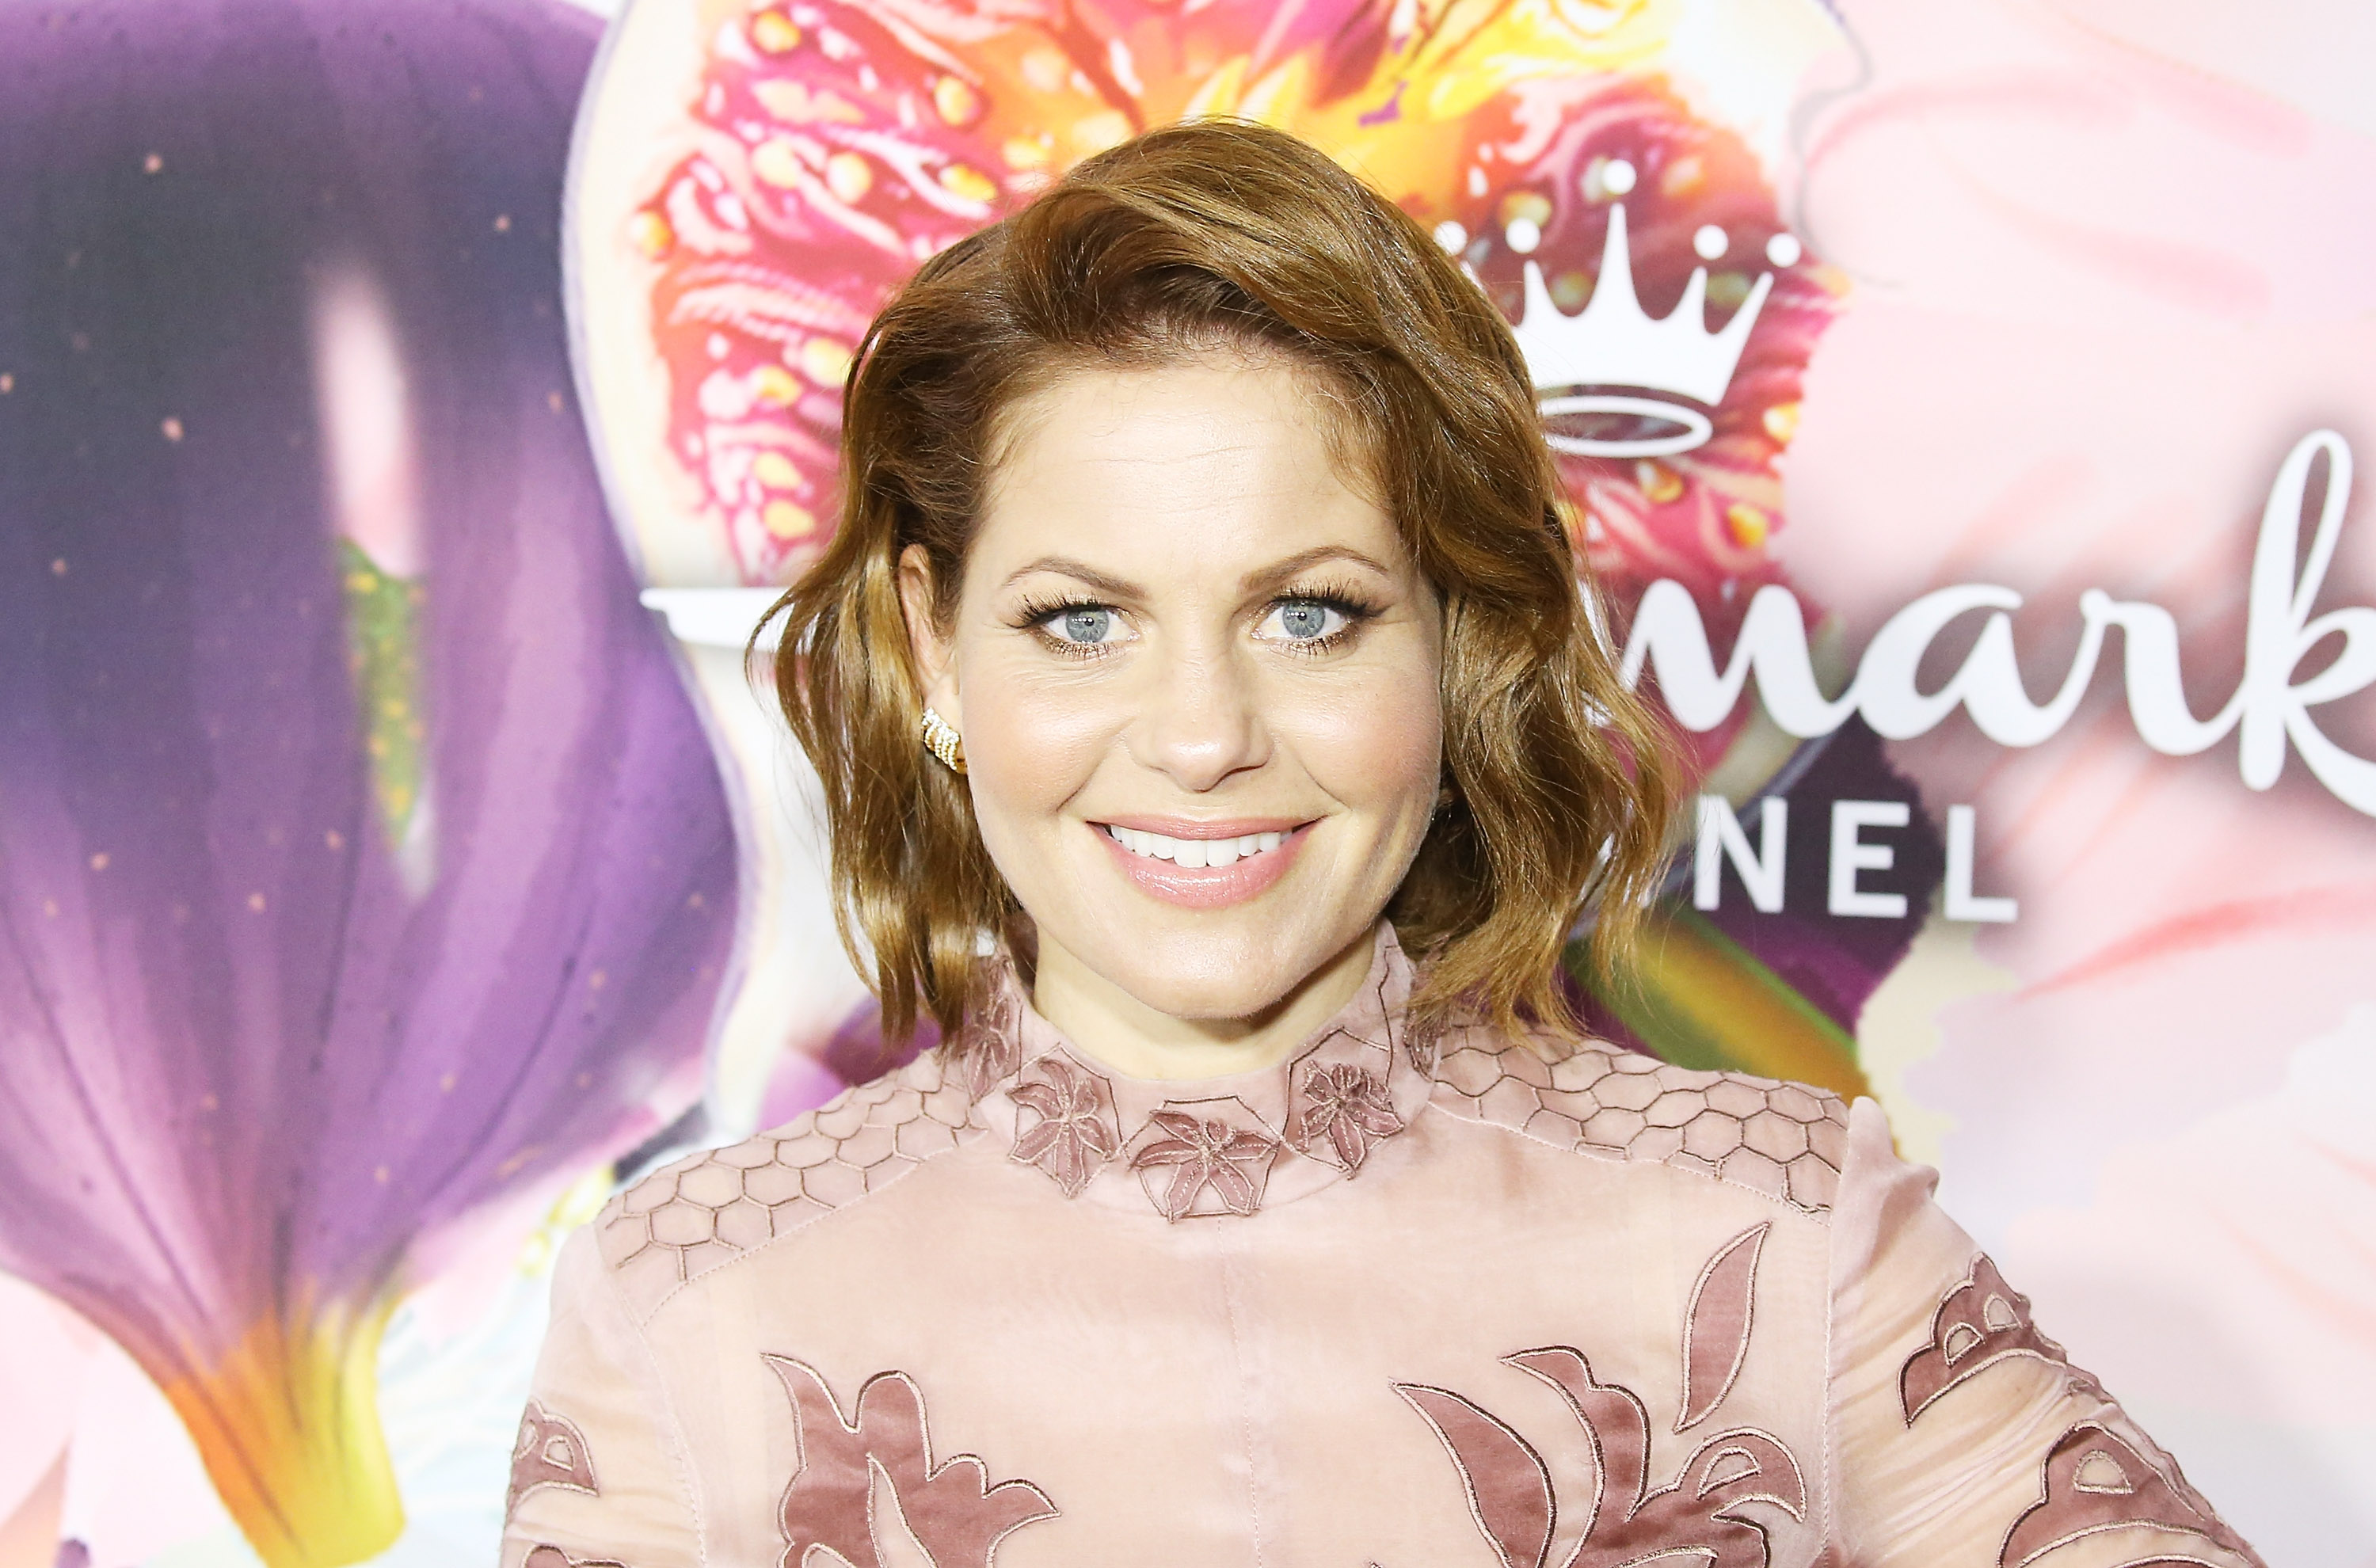 Candace Cameron Bure clapped back hard at a troll who tried to body-shame her on Instagram